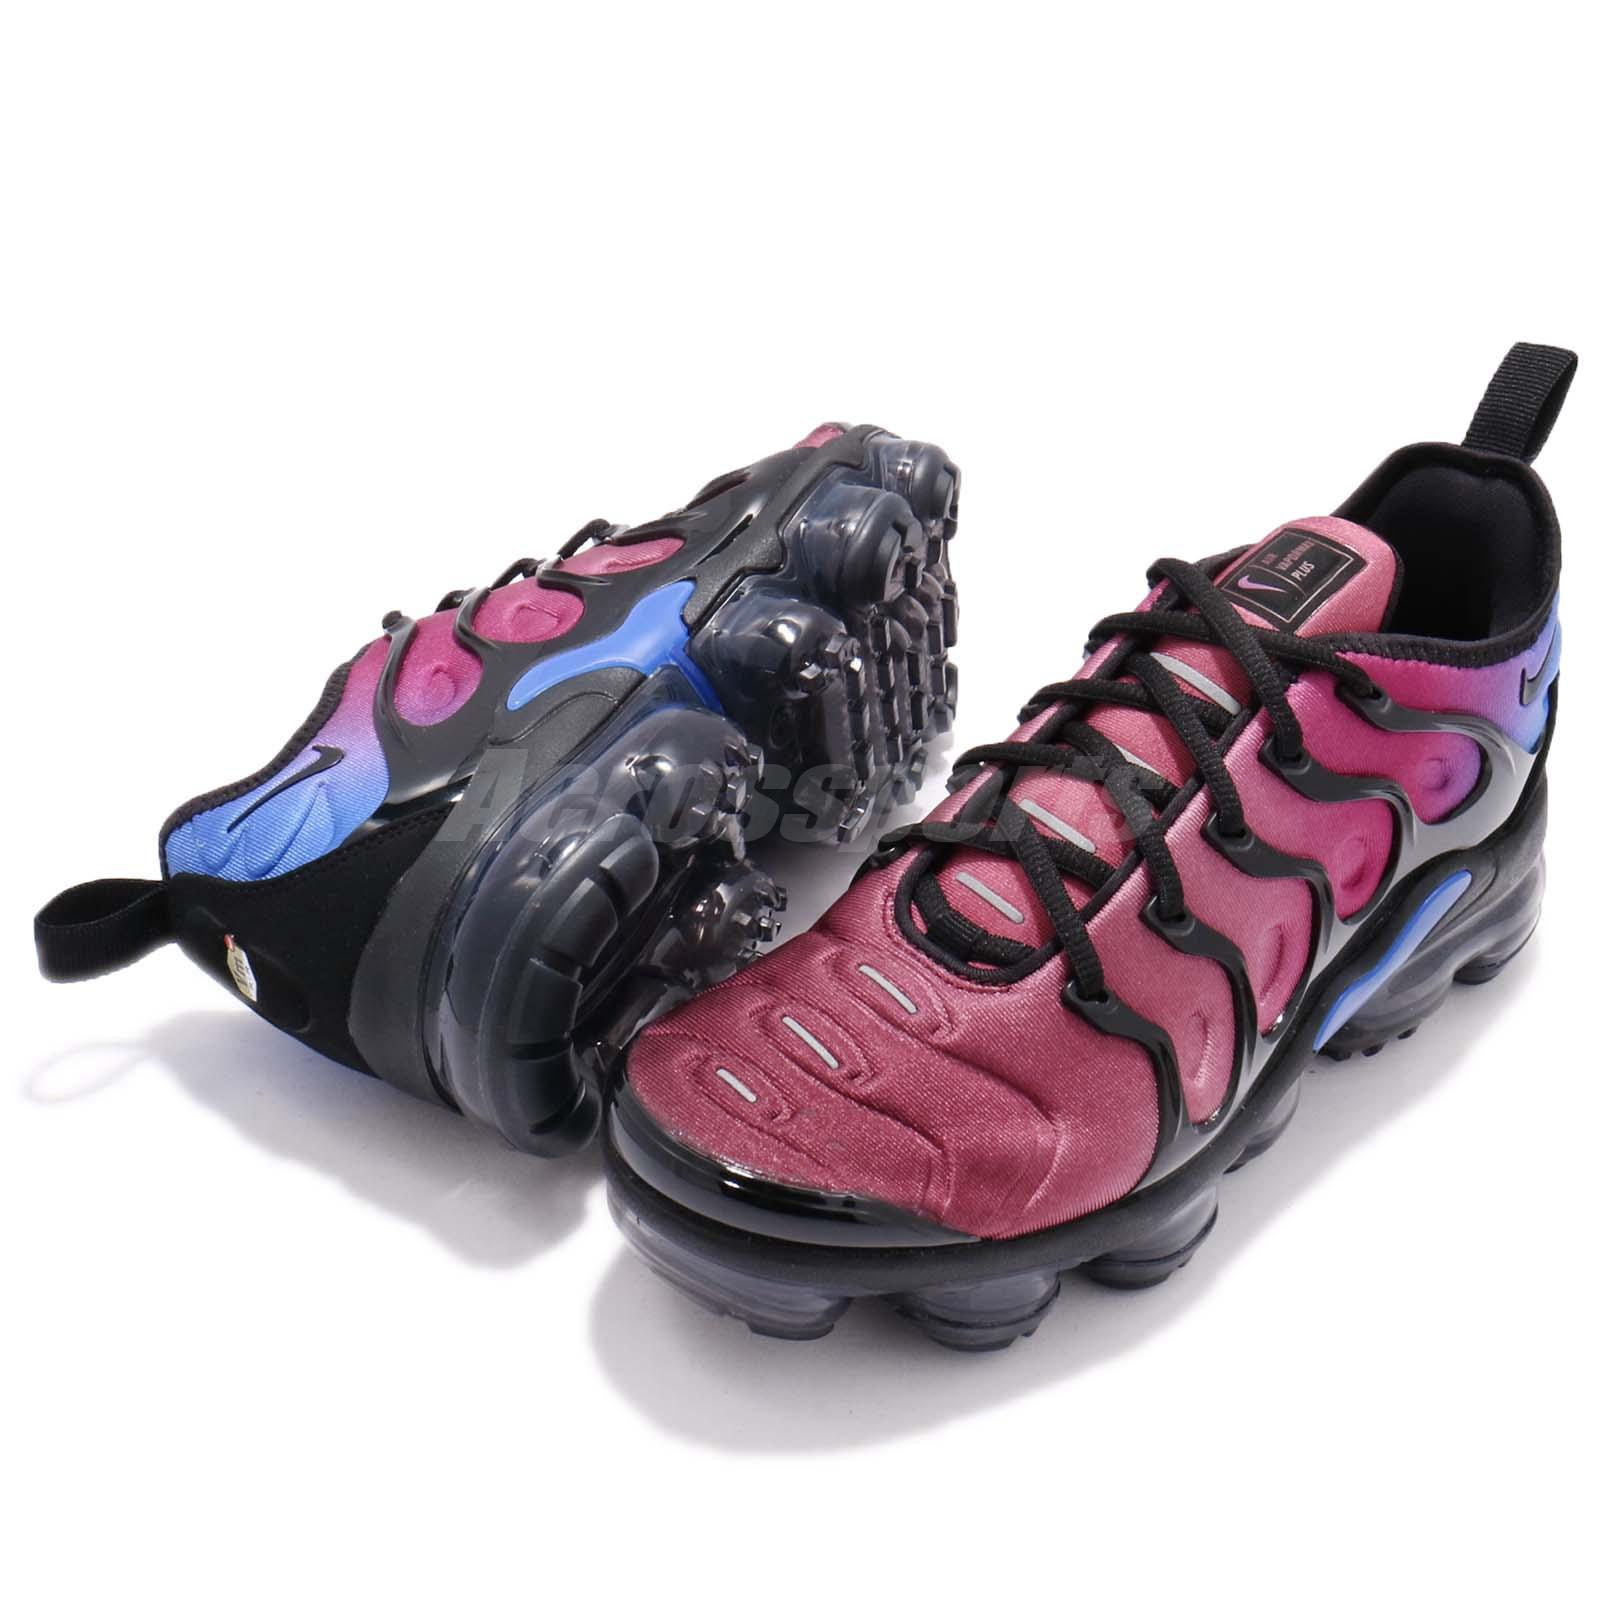 wholesale dealer 77746 0ca5c Nike Wmns Air Vapormax Plus Black Team Red Hyper Violet Women Shoes ...